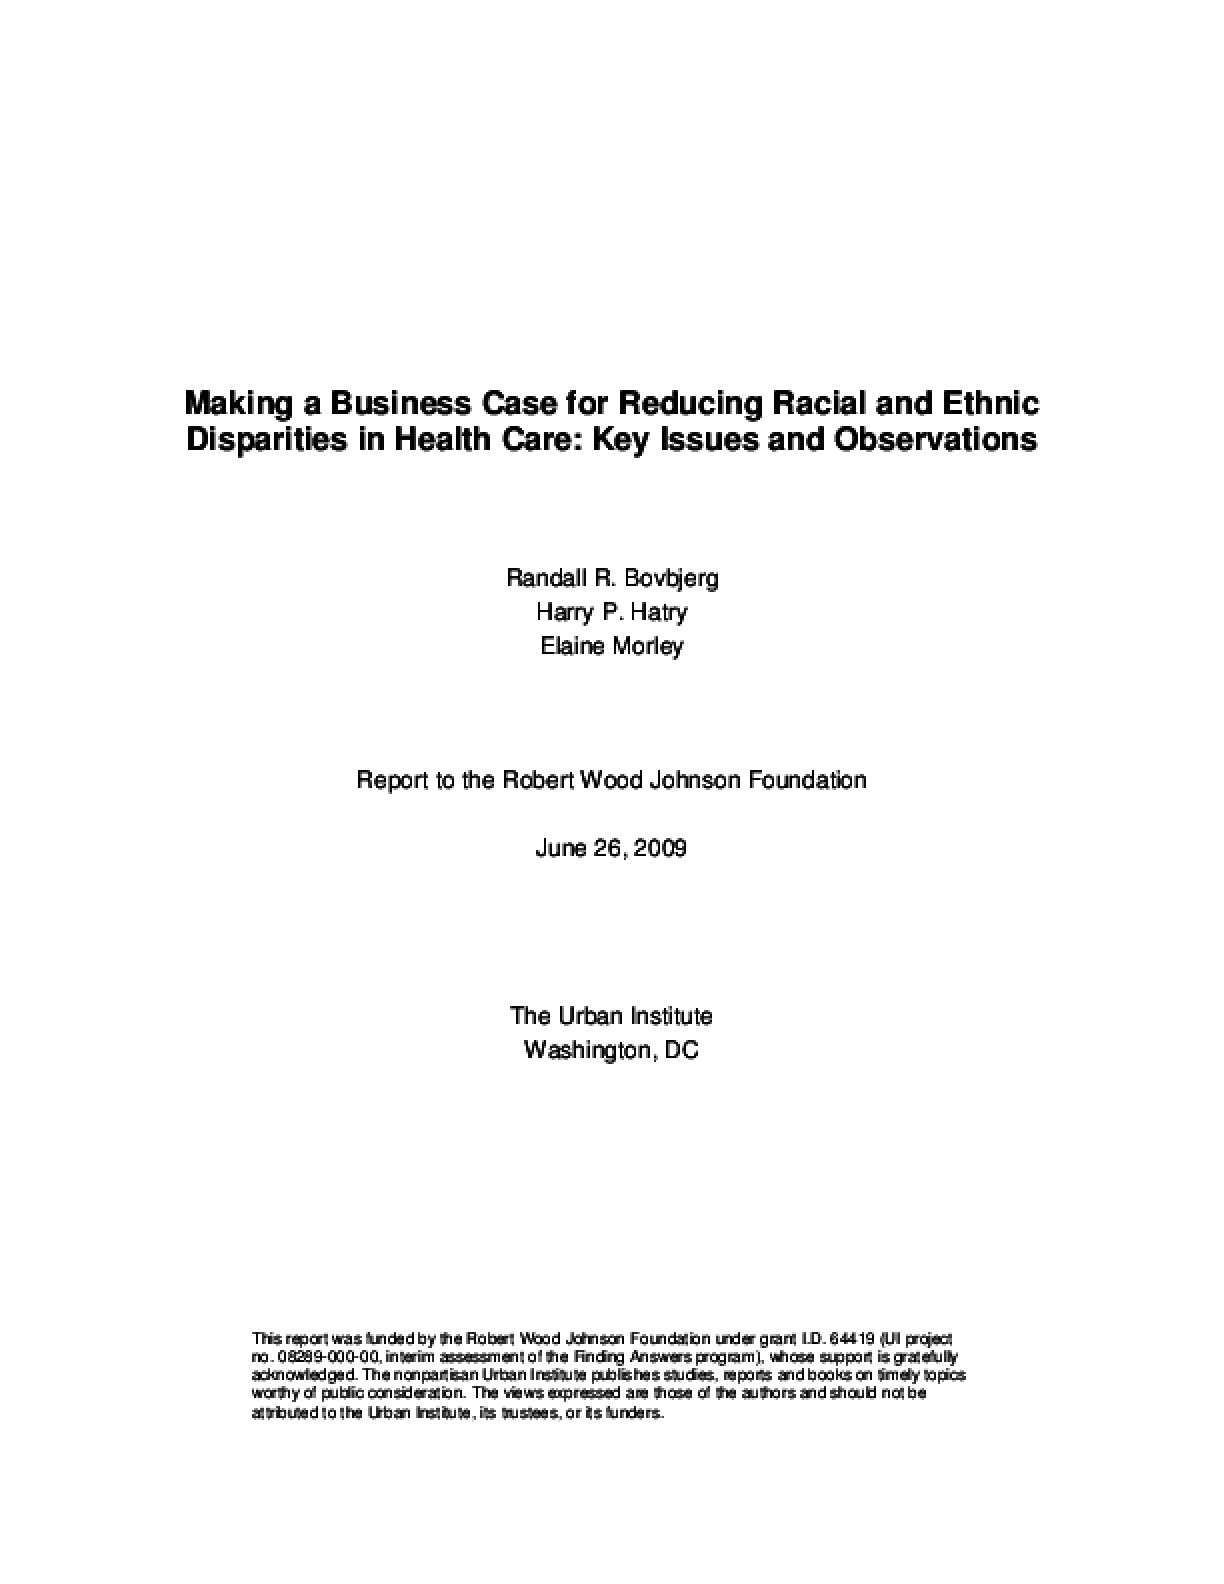 Making a Business Case for Reducing Racial and Ethnic Disparities in Health Care: Key Issues and Observations